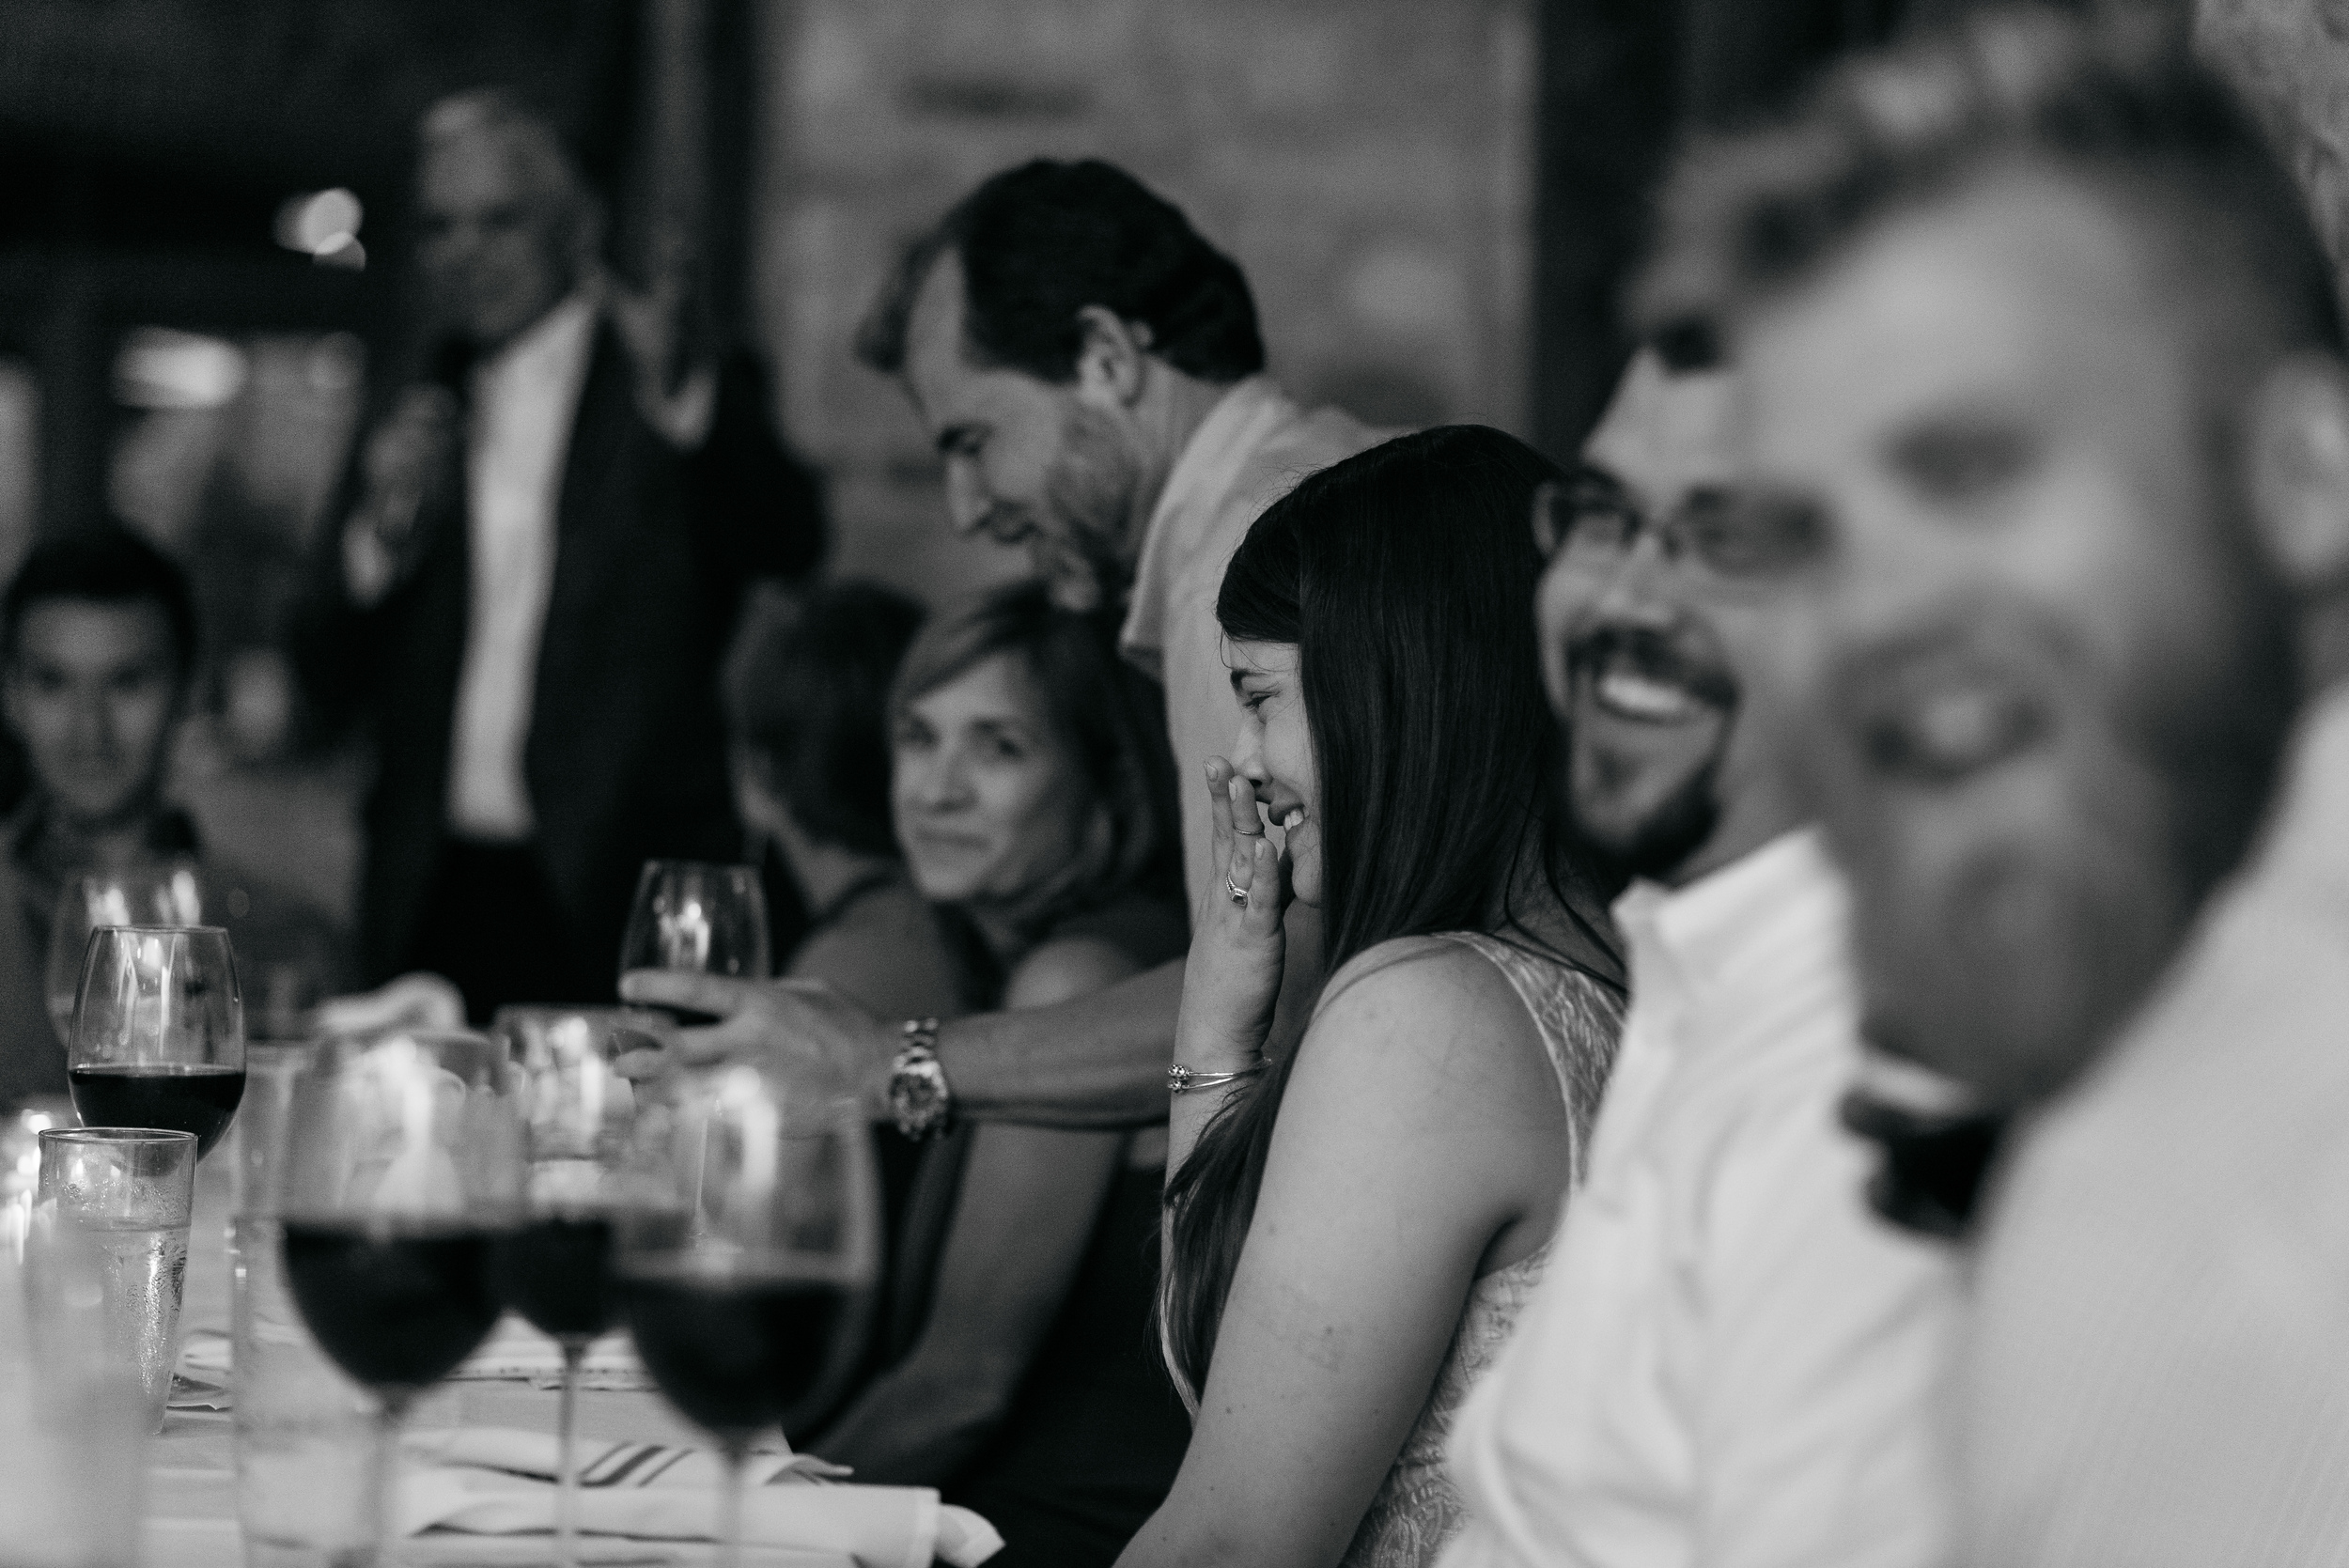 Toasts at the welcome dinner at Trattoria Lisina